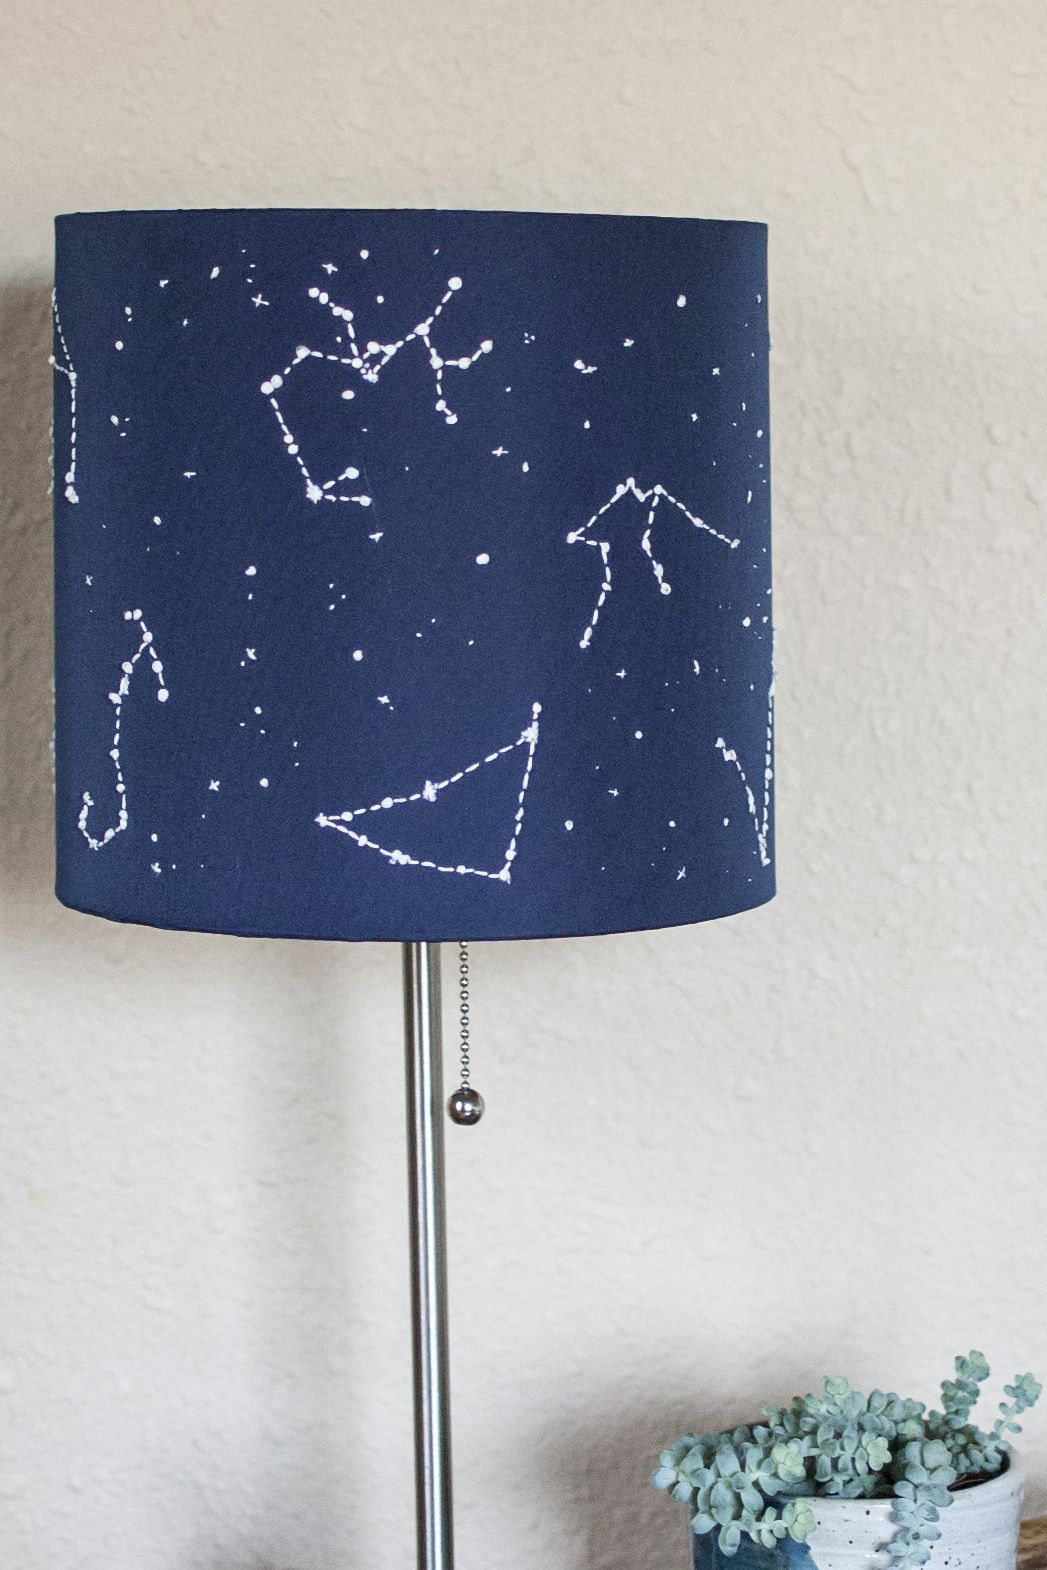 Diy Constellation Lamp Poke Holes To Make The Room A Starry Night Diy Diy Home Decor Diy Shabby Chic Lamp Shades